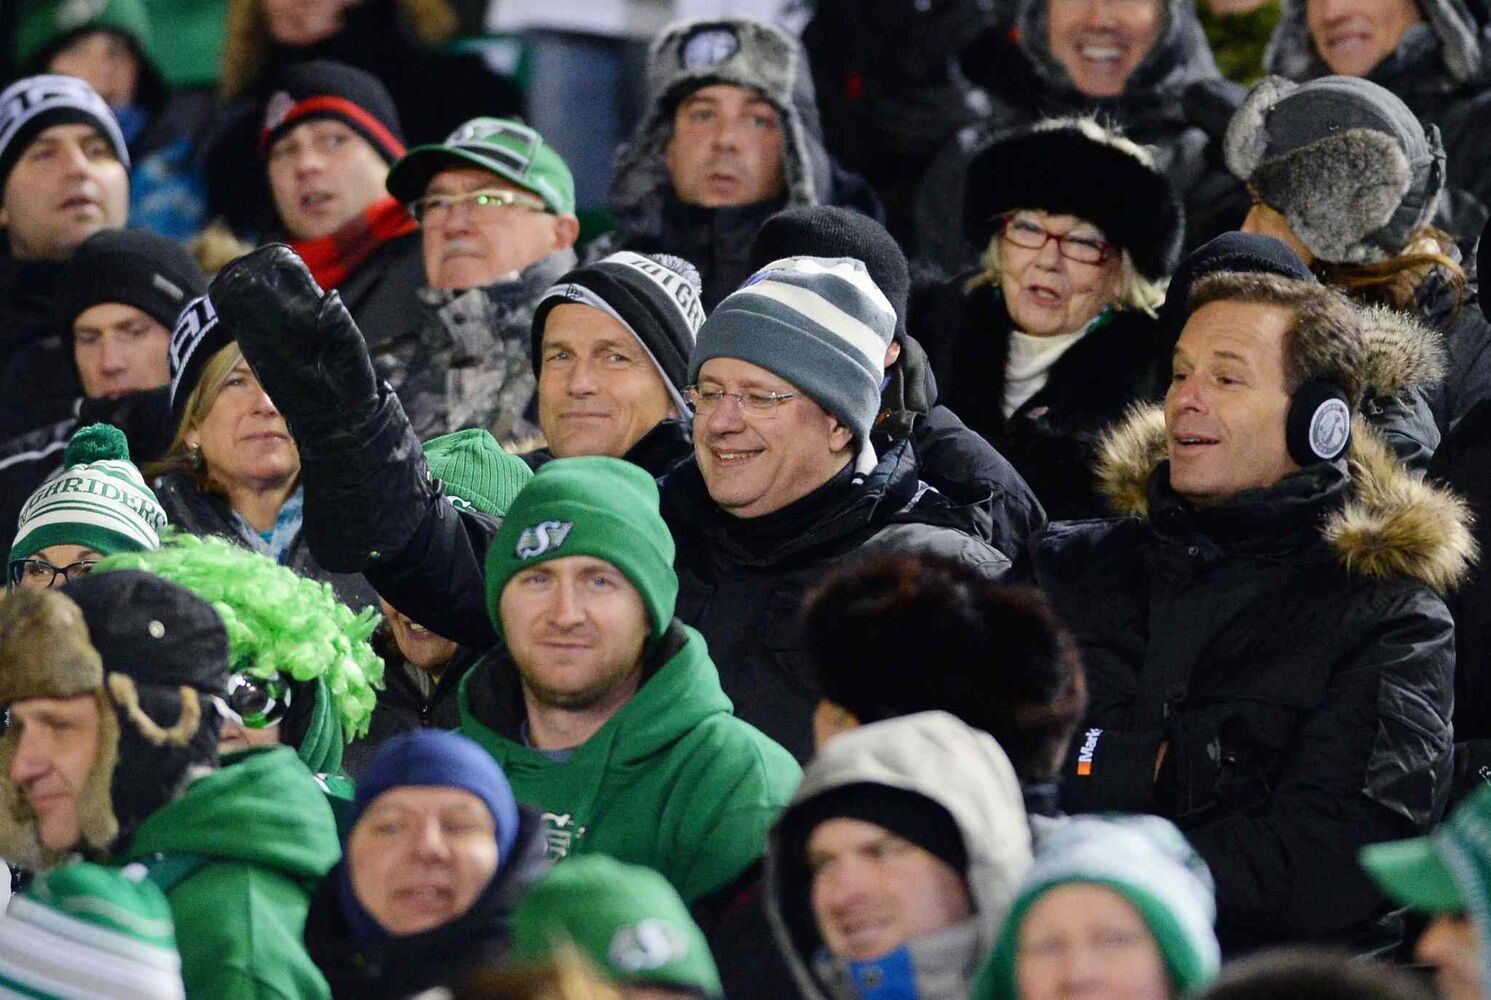 Prime Minister Stephen Harper (centre, in striped toque), sits with CFL Commissioner Mark Cohon (right) during the third quarter.